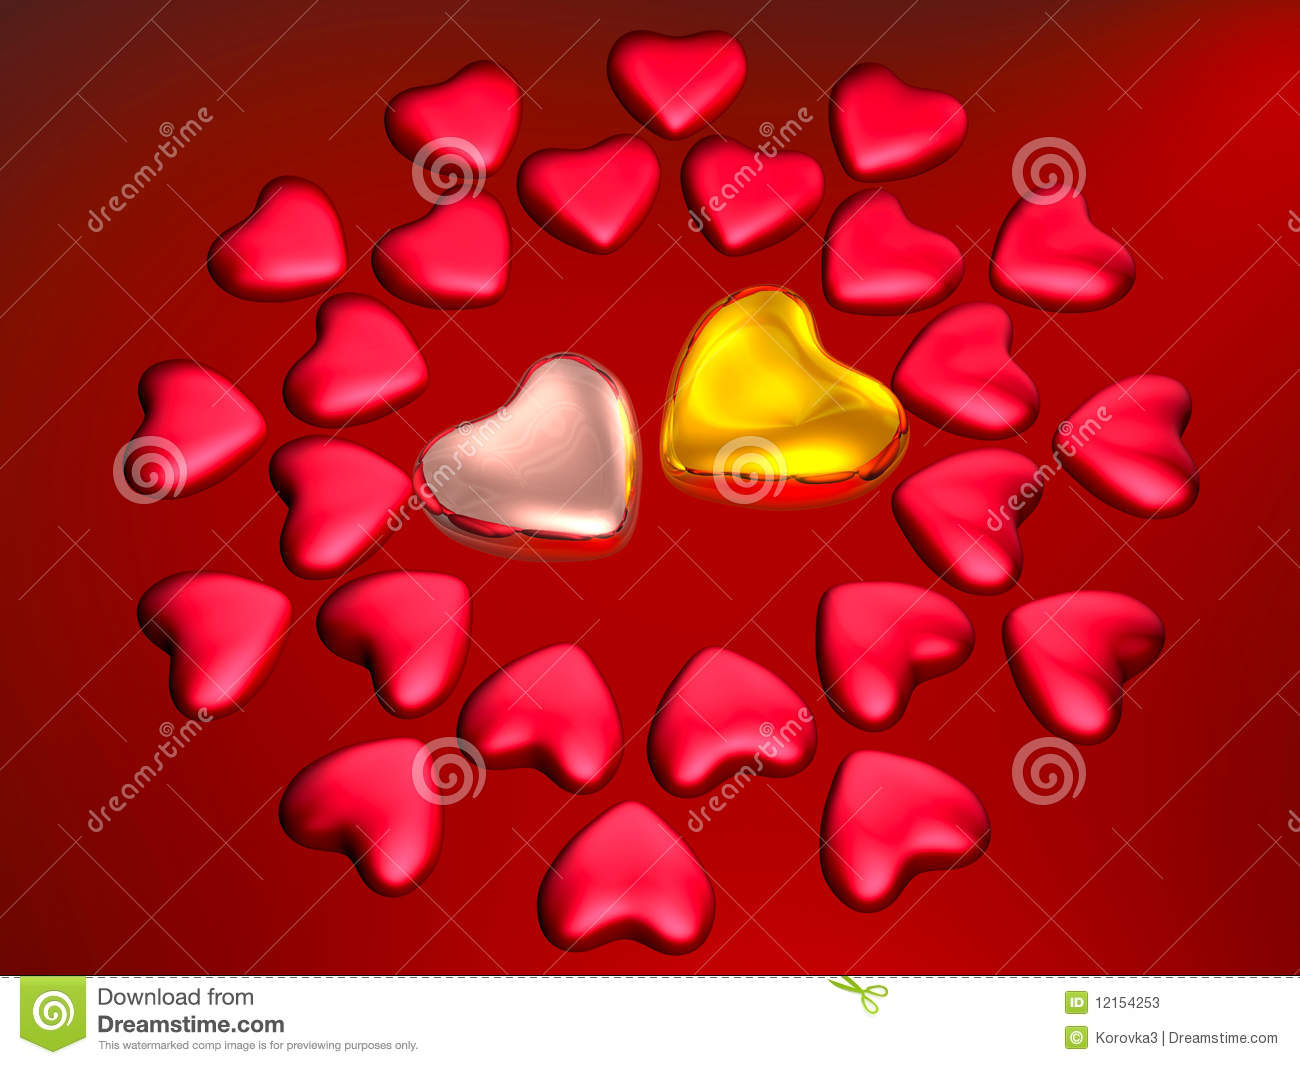 Hearts romantic valentines day gift ideas for him or her hearts 3 best valentine039s day rom - 3 8